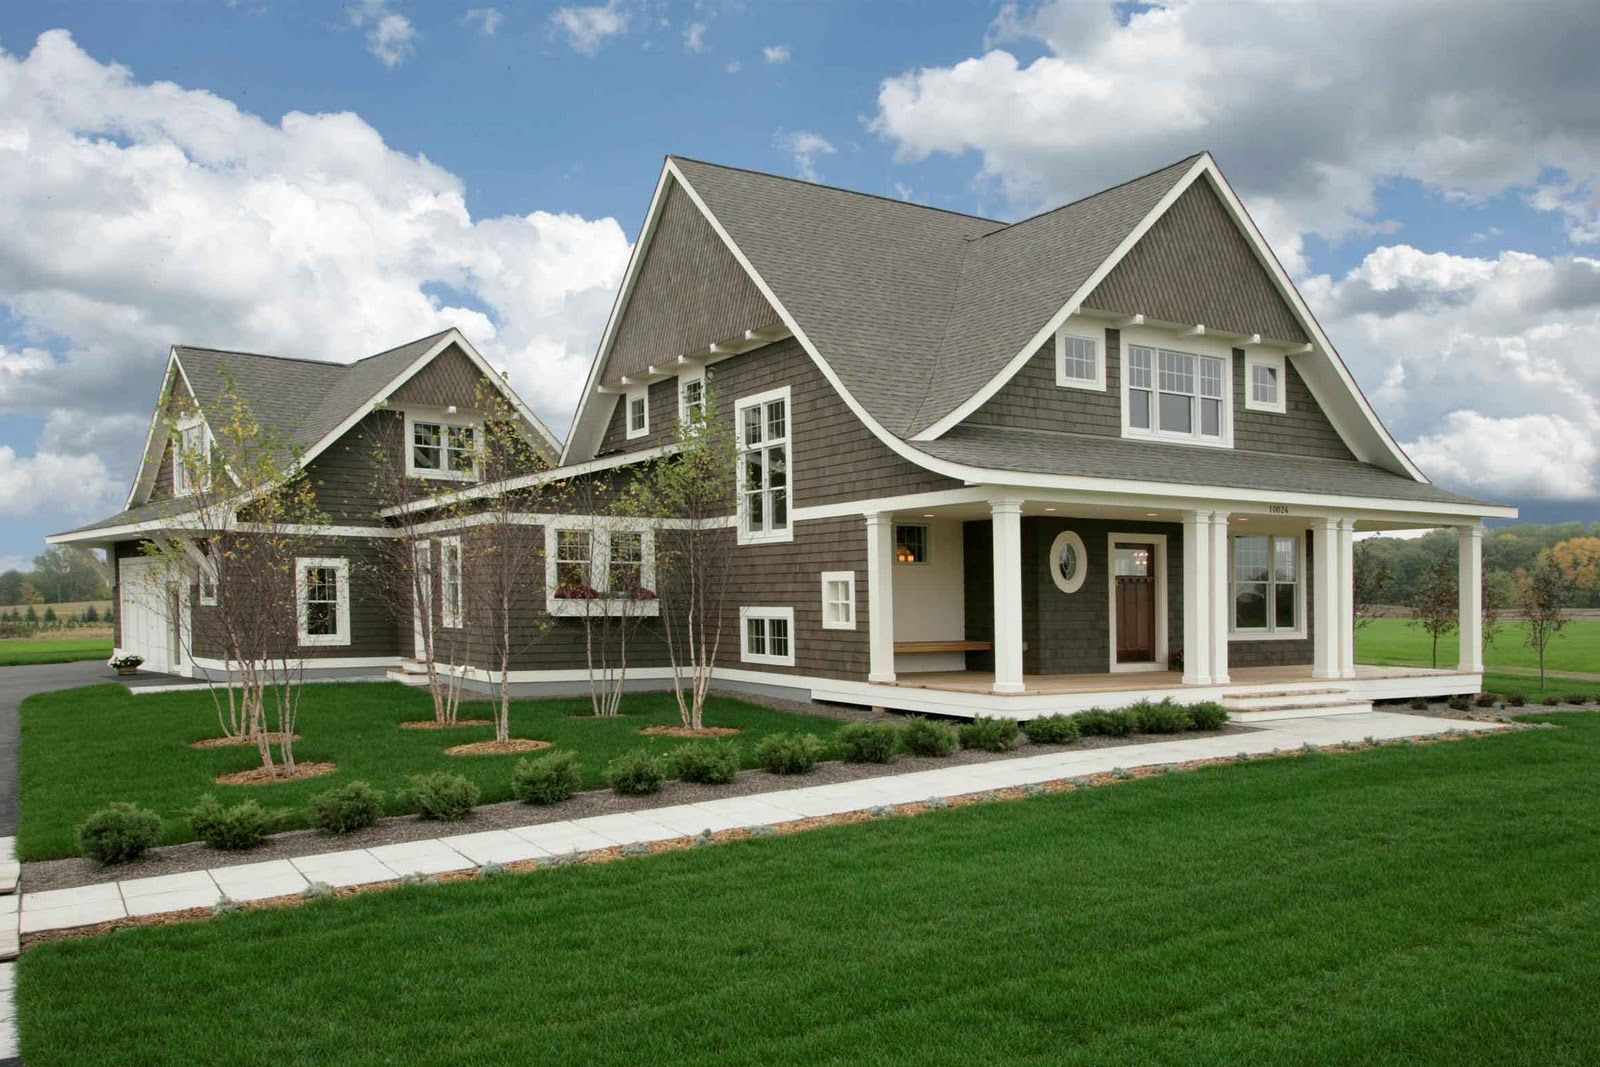 Light Gray Is The Traditional Color Of Cape Cod–style Houses